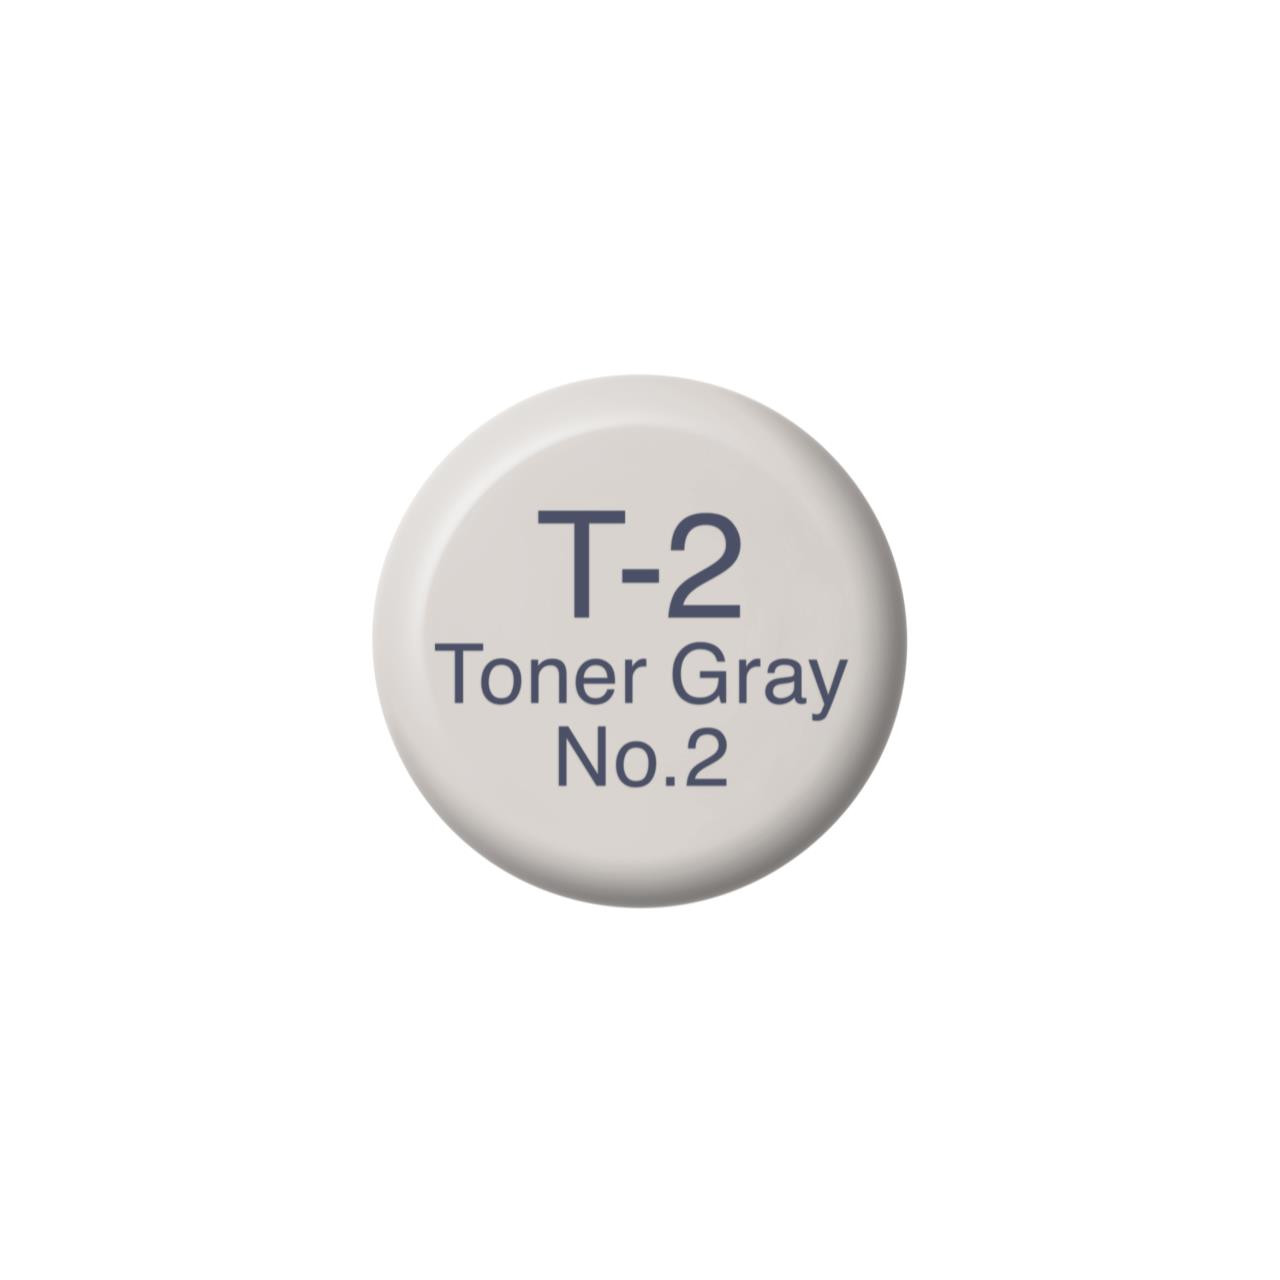 T2 Toner Gray 2, Copic Ink - 4511338055564